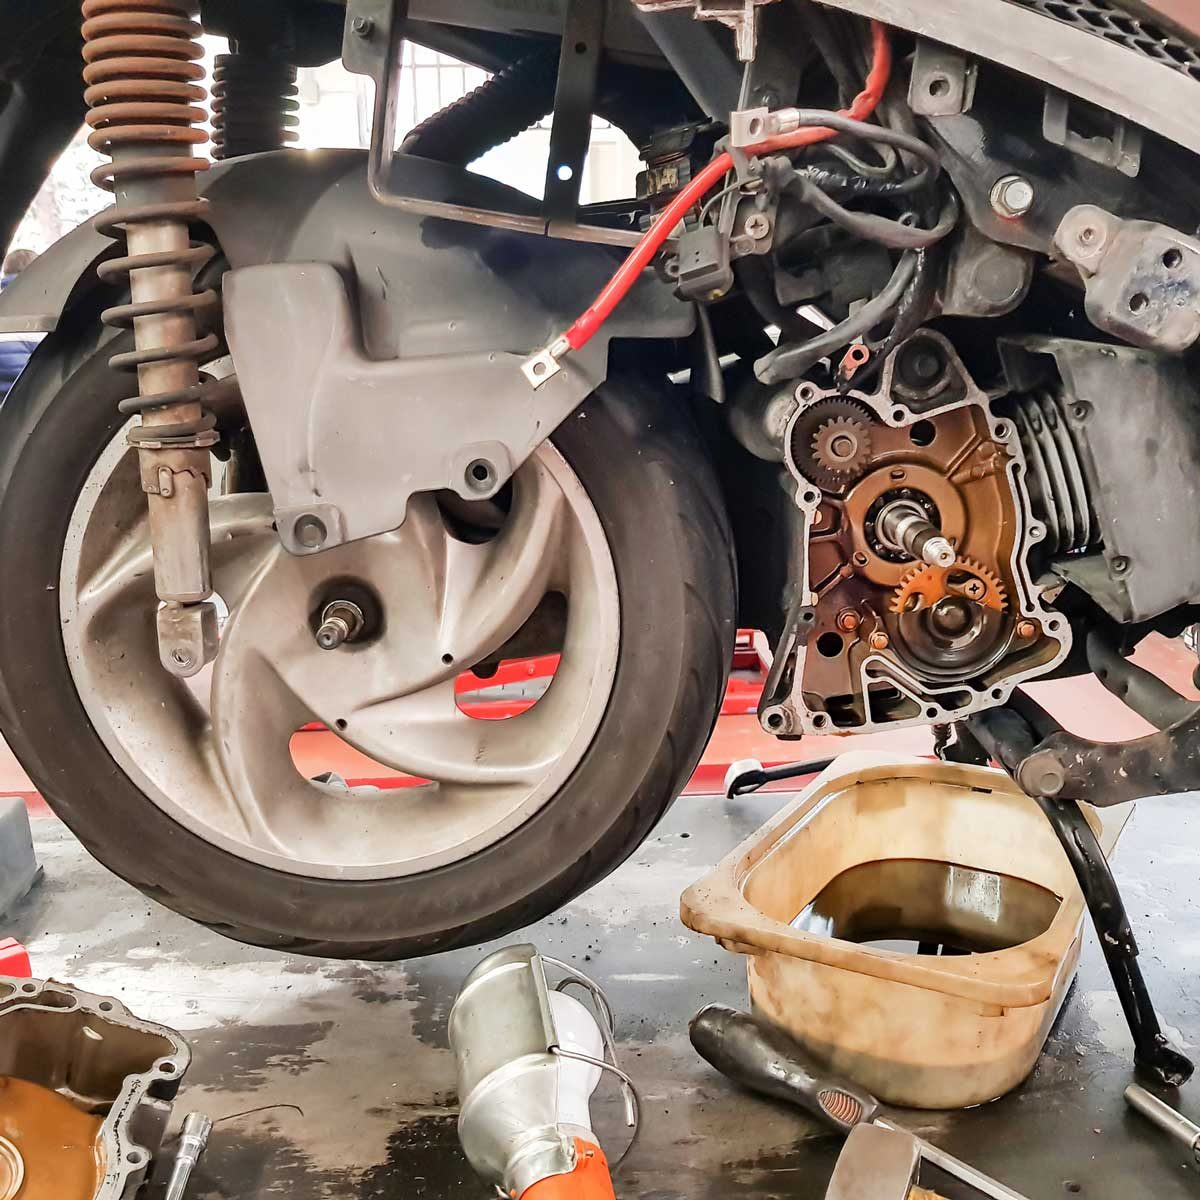 How Often Do I Change the Oil in My Motorcycle? | The ...